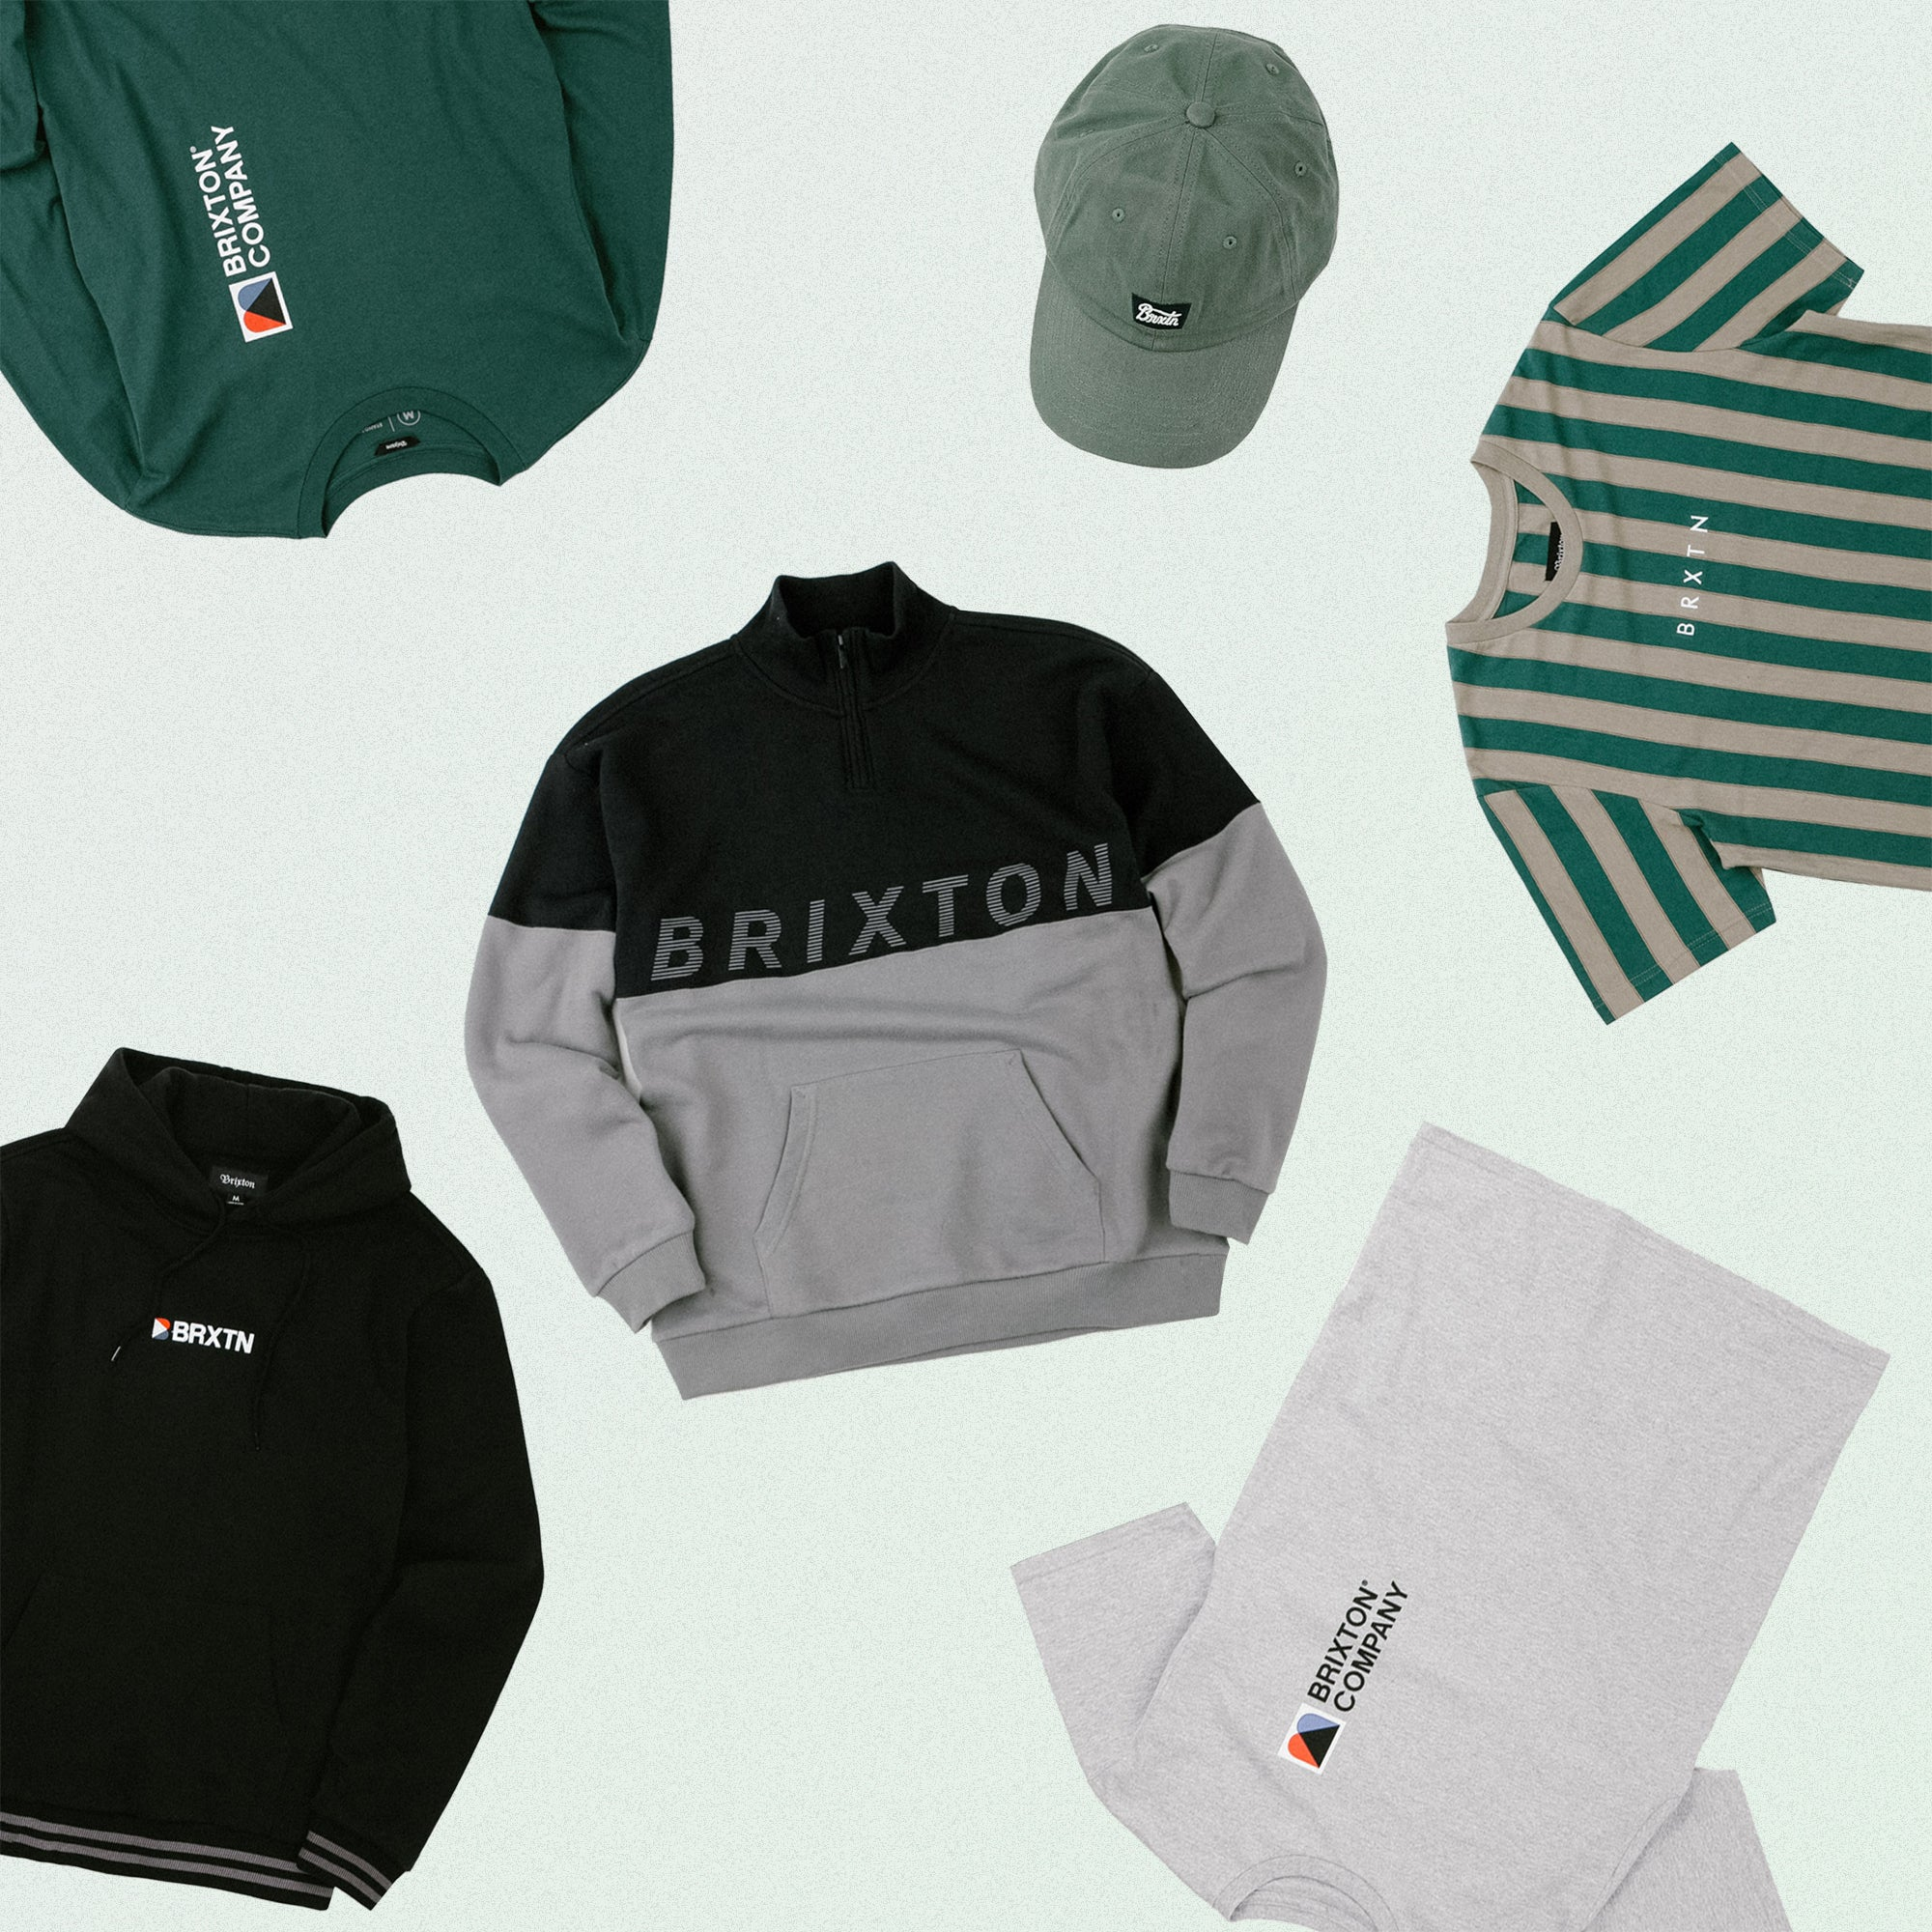 Brixton: Core Pieces & Seasonal Updates | Flatspot